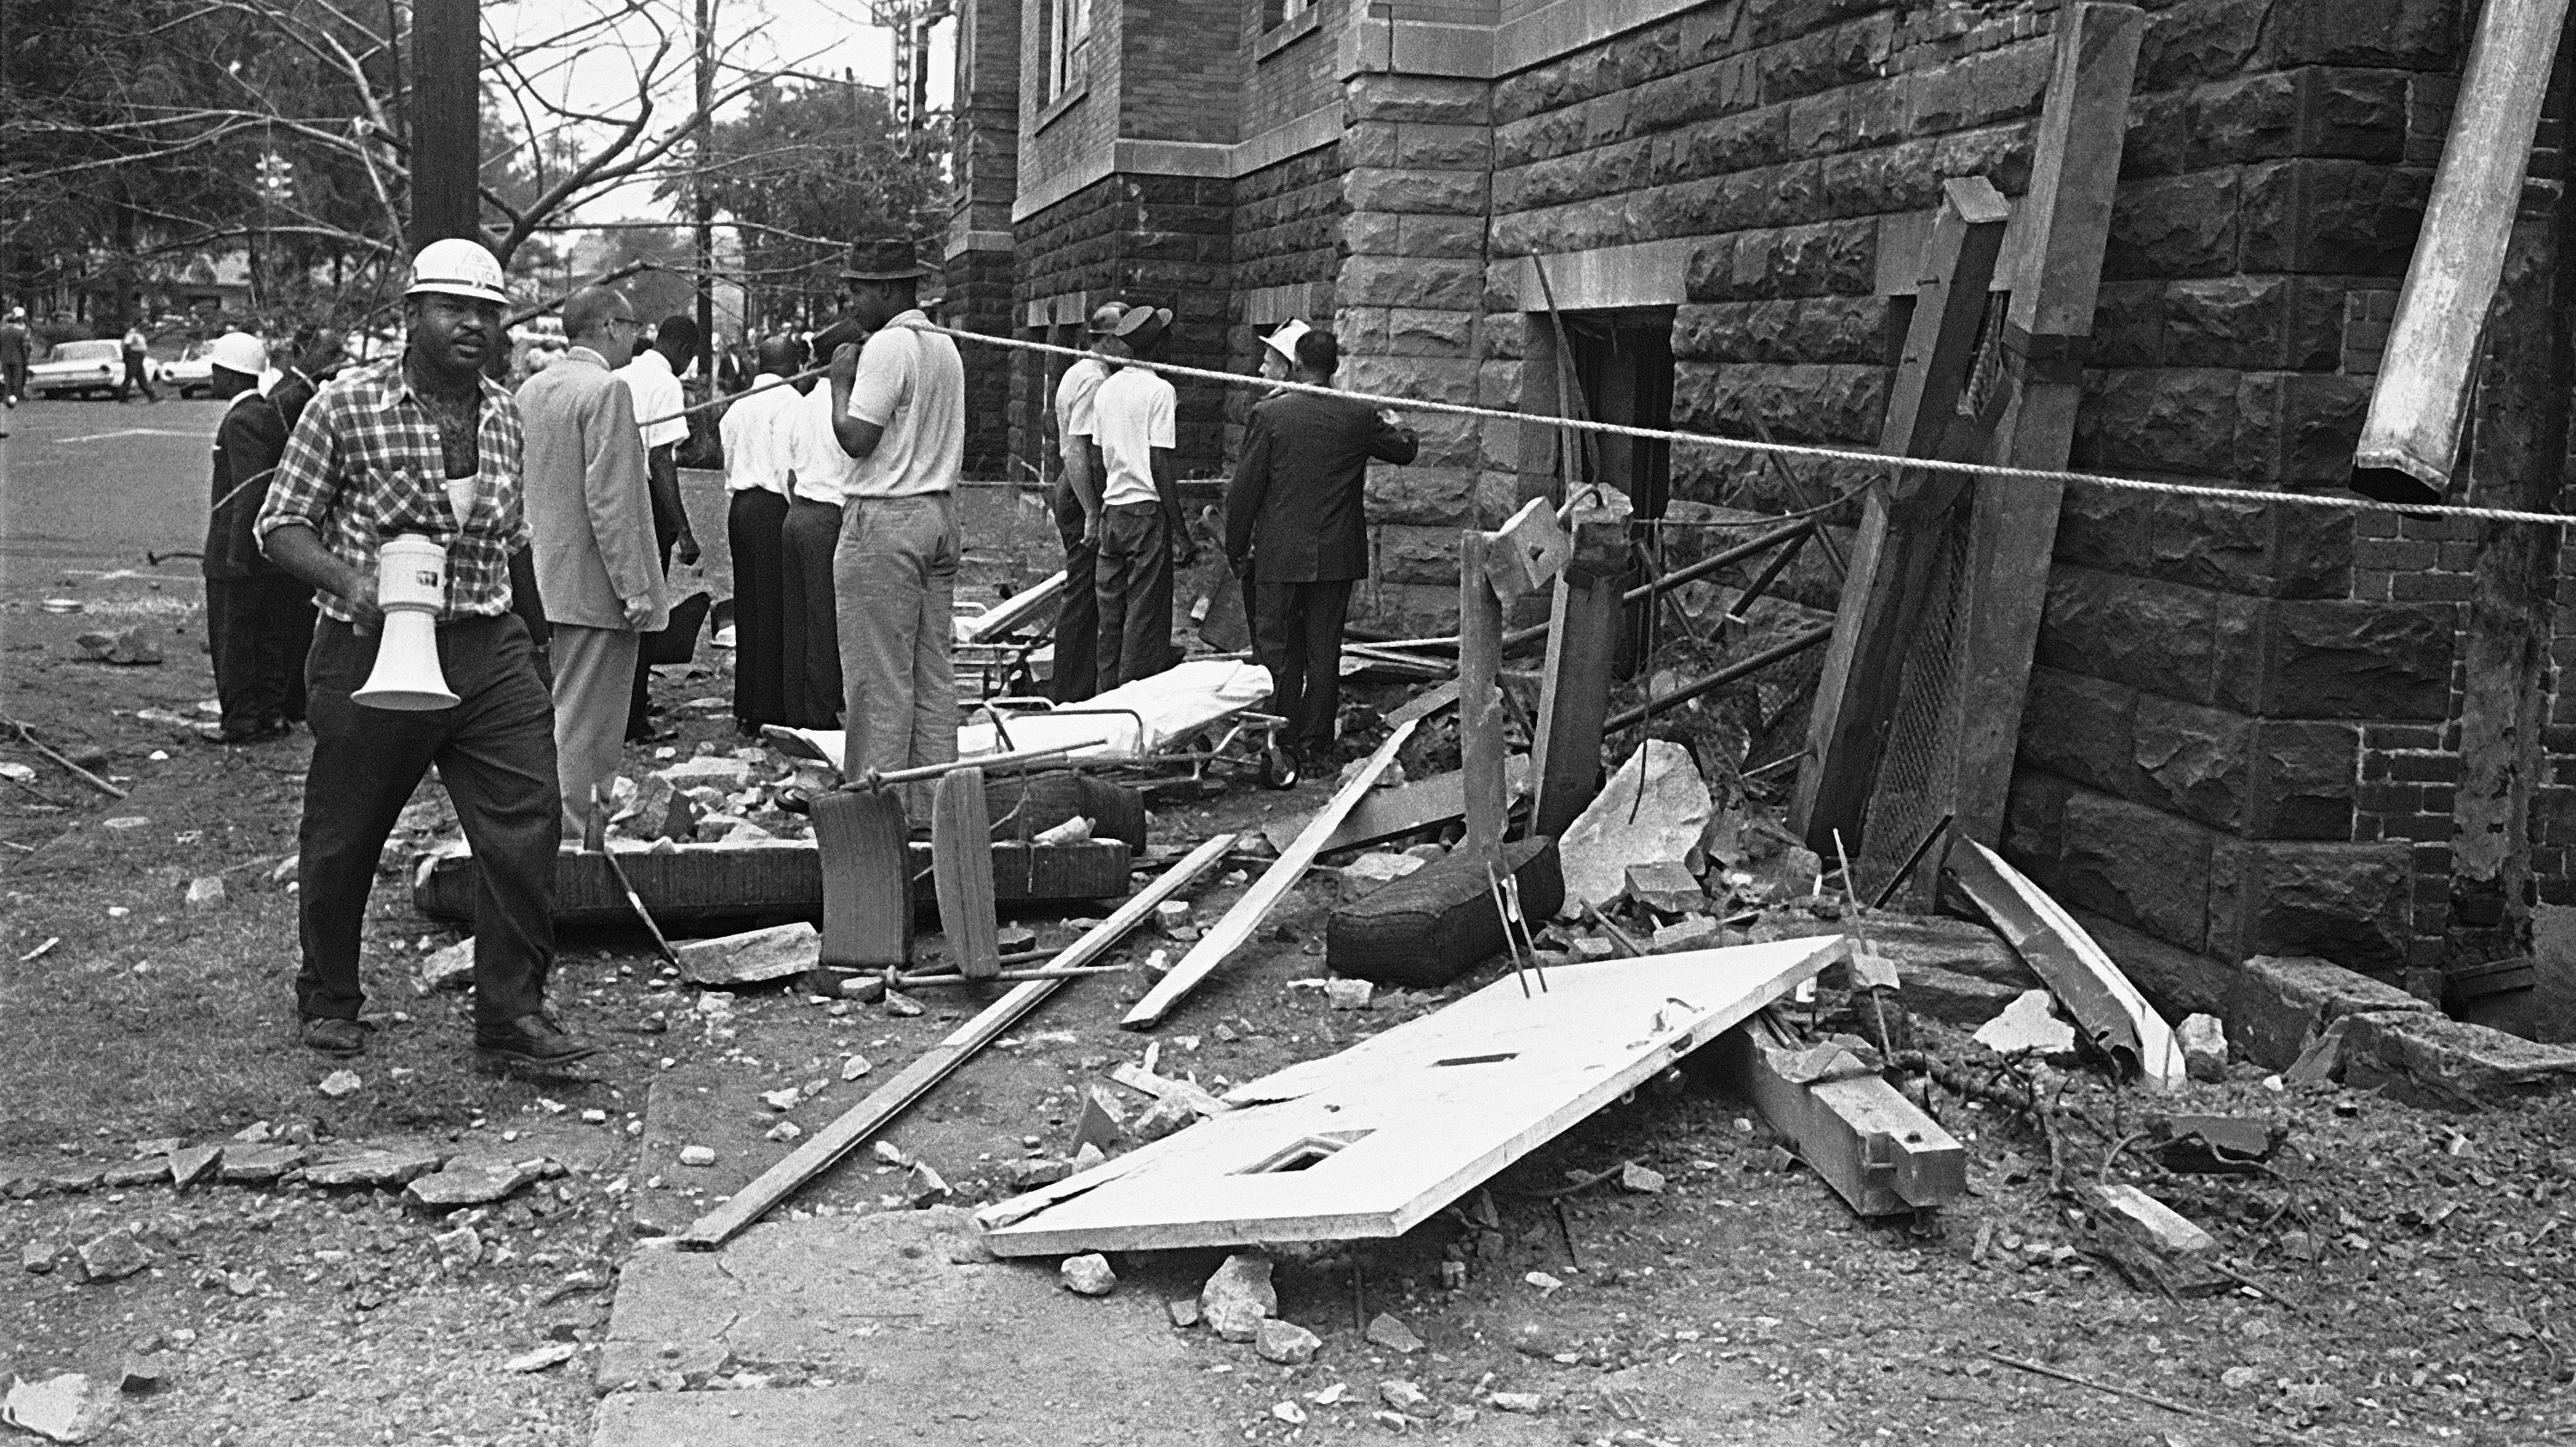 Congress Honors Victims Of Infamous Alabama Church Bombing : Code Switch : NPR